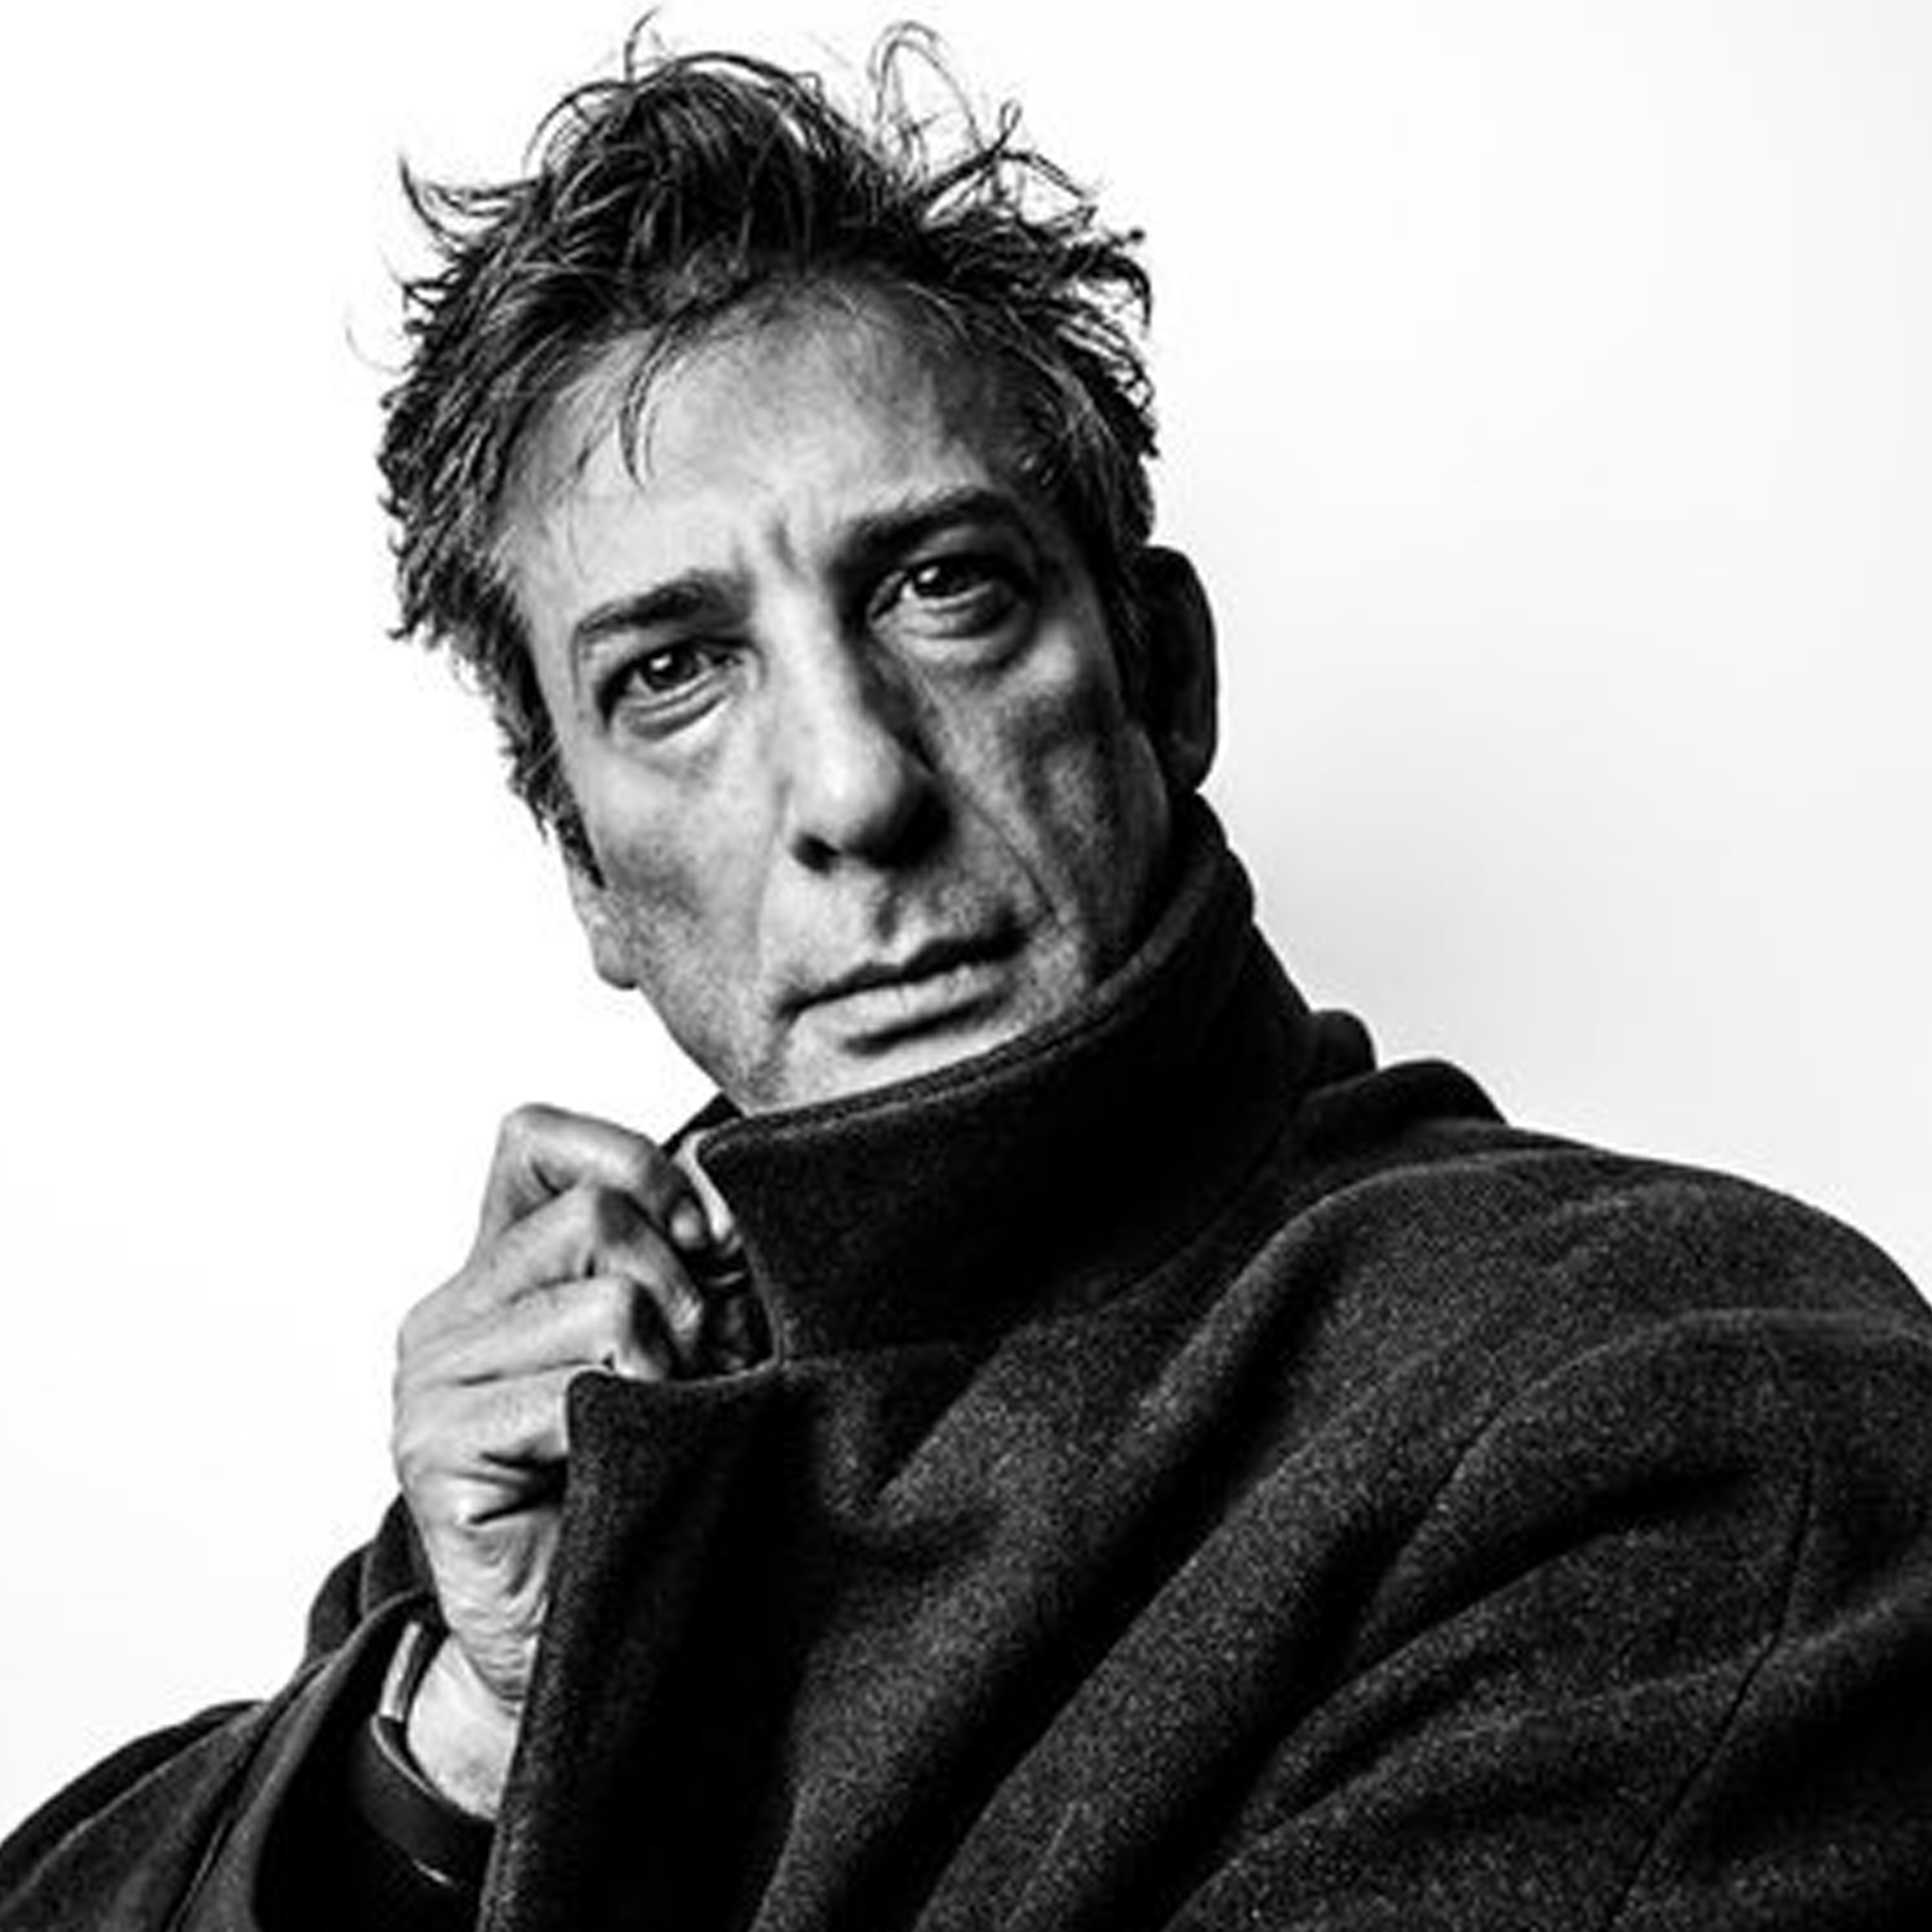 Neil Gaiman - Read how Neil—with two opposable thumbs, 140 characters and his Twitter account—funded our Kickstarter campaign with only 30 hours until it ended. Curious? You can read about it here.